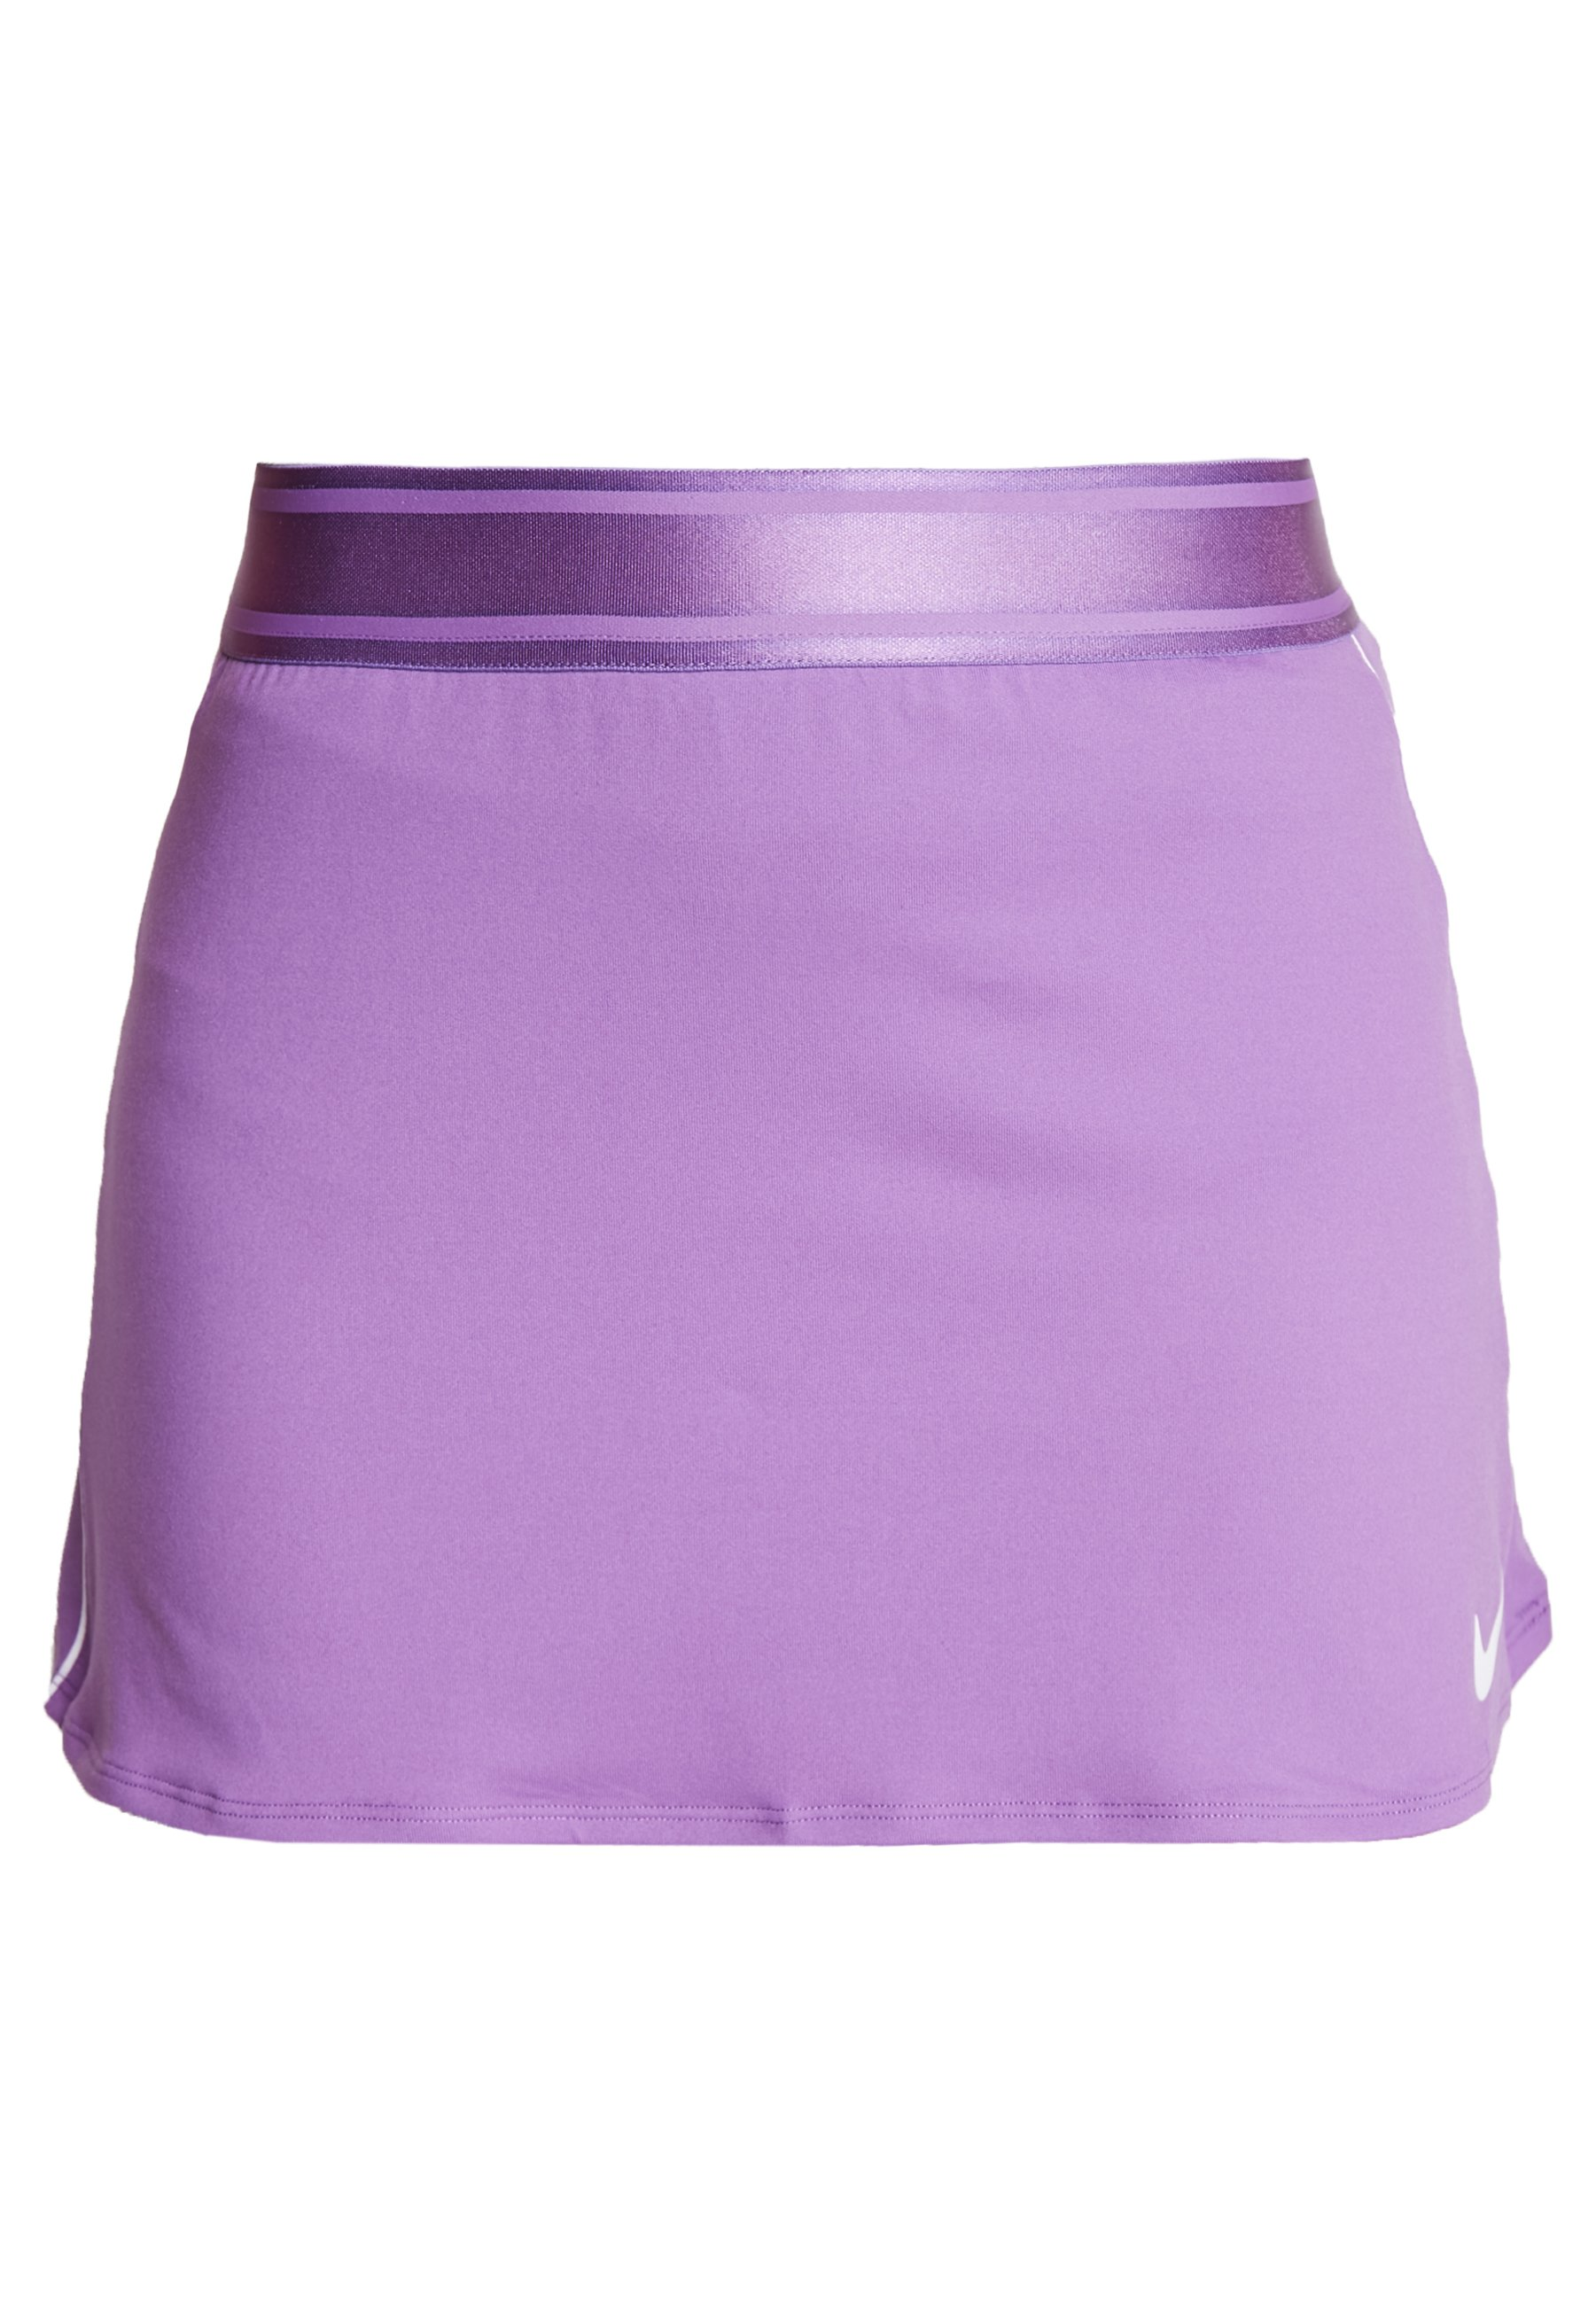 Nike Performance DRY SKIRT - Sports skirt - purple/white